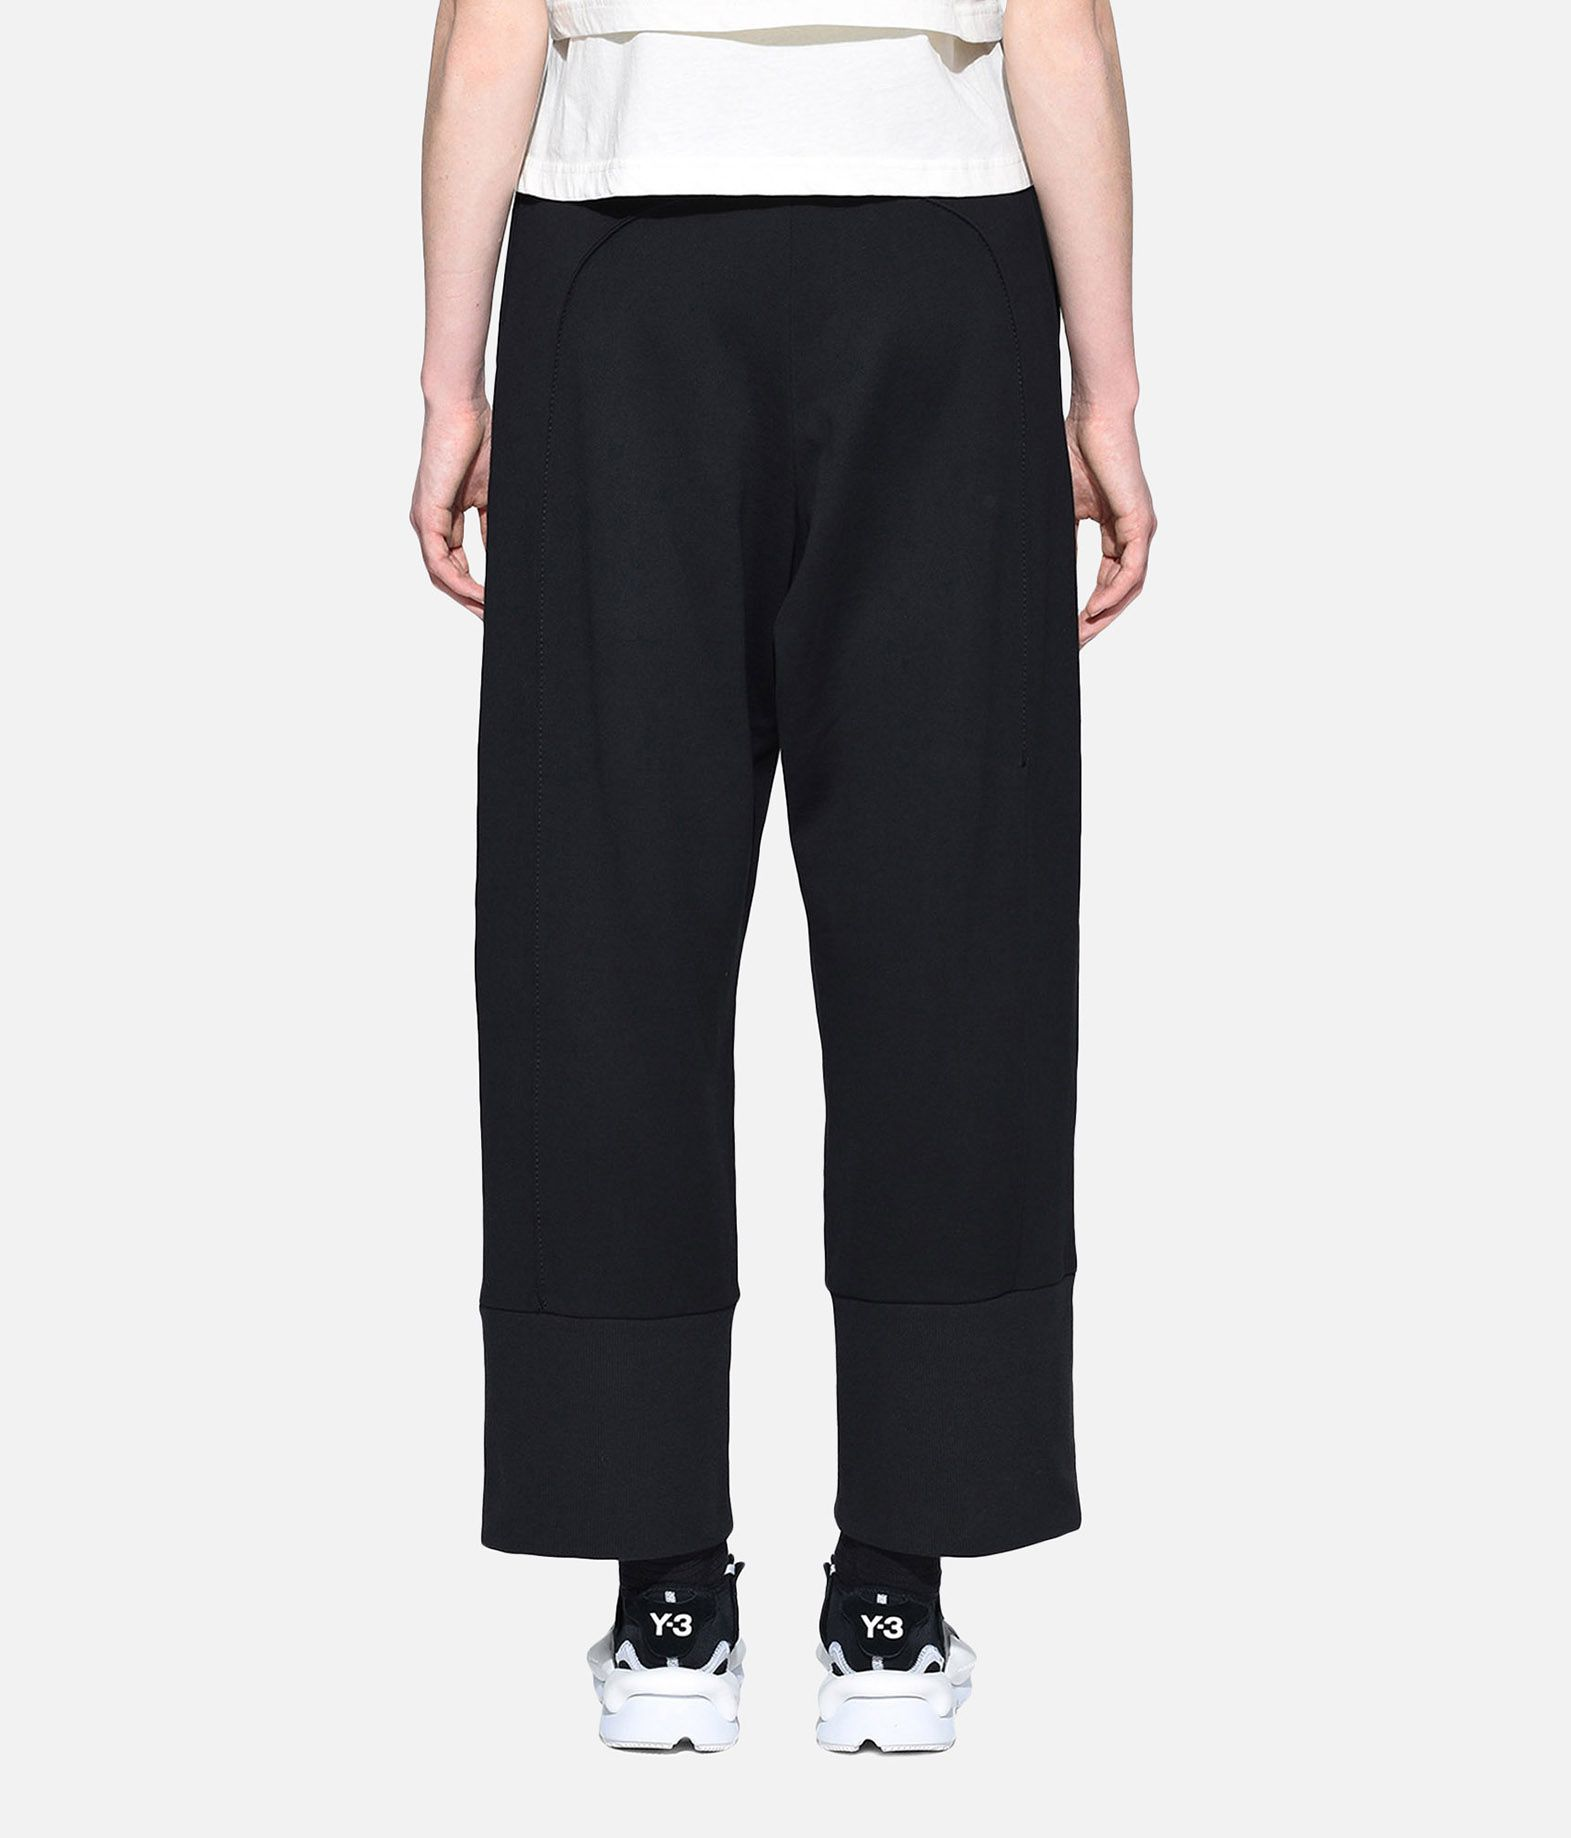 Y-3 Y-3 Sashiko Pants Casual trouser Woman d